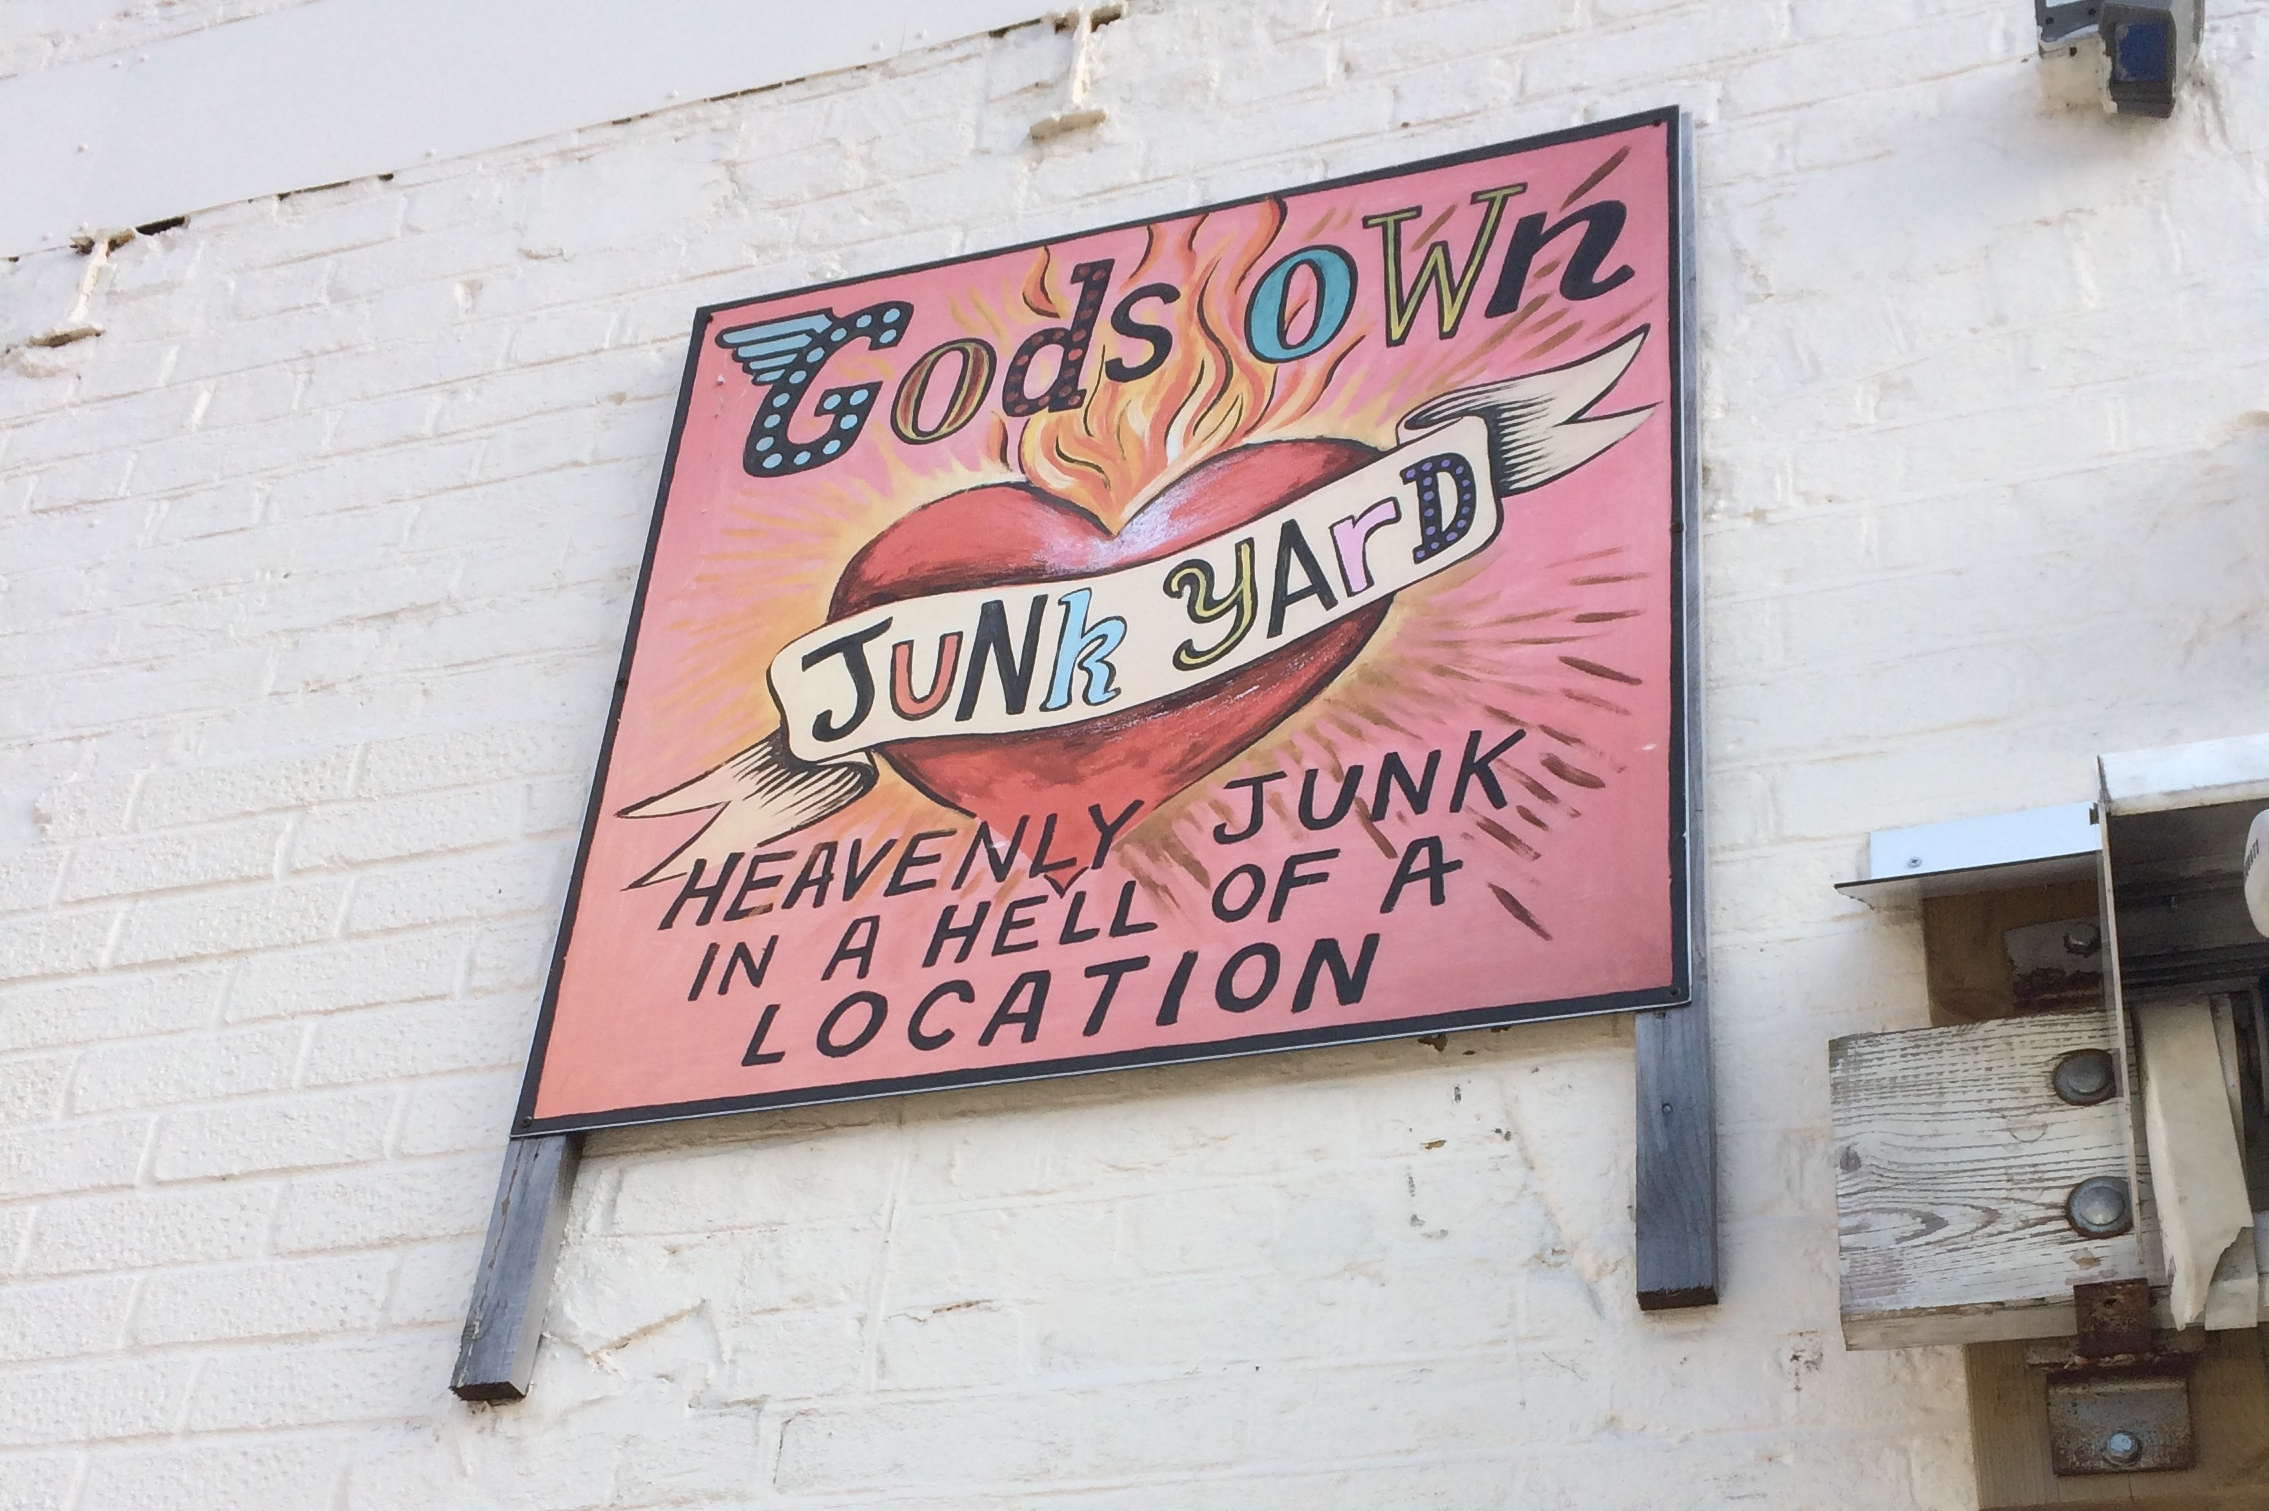 God's Own Junkyard: Heavenly Junk in a Hell of a Location